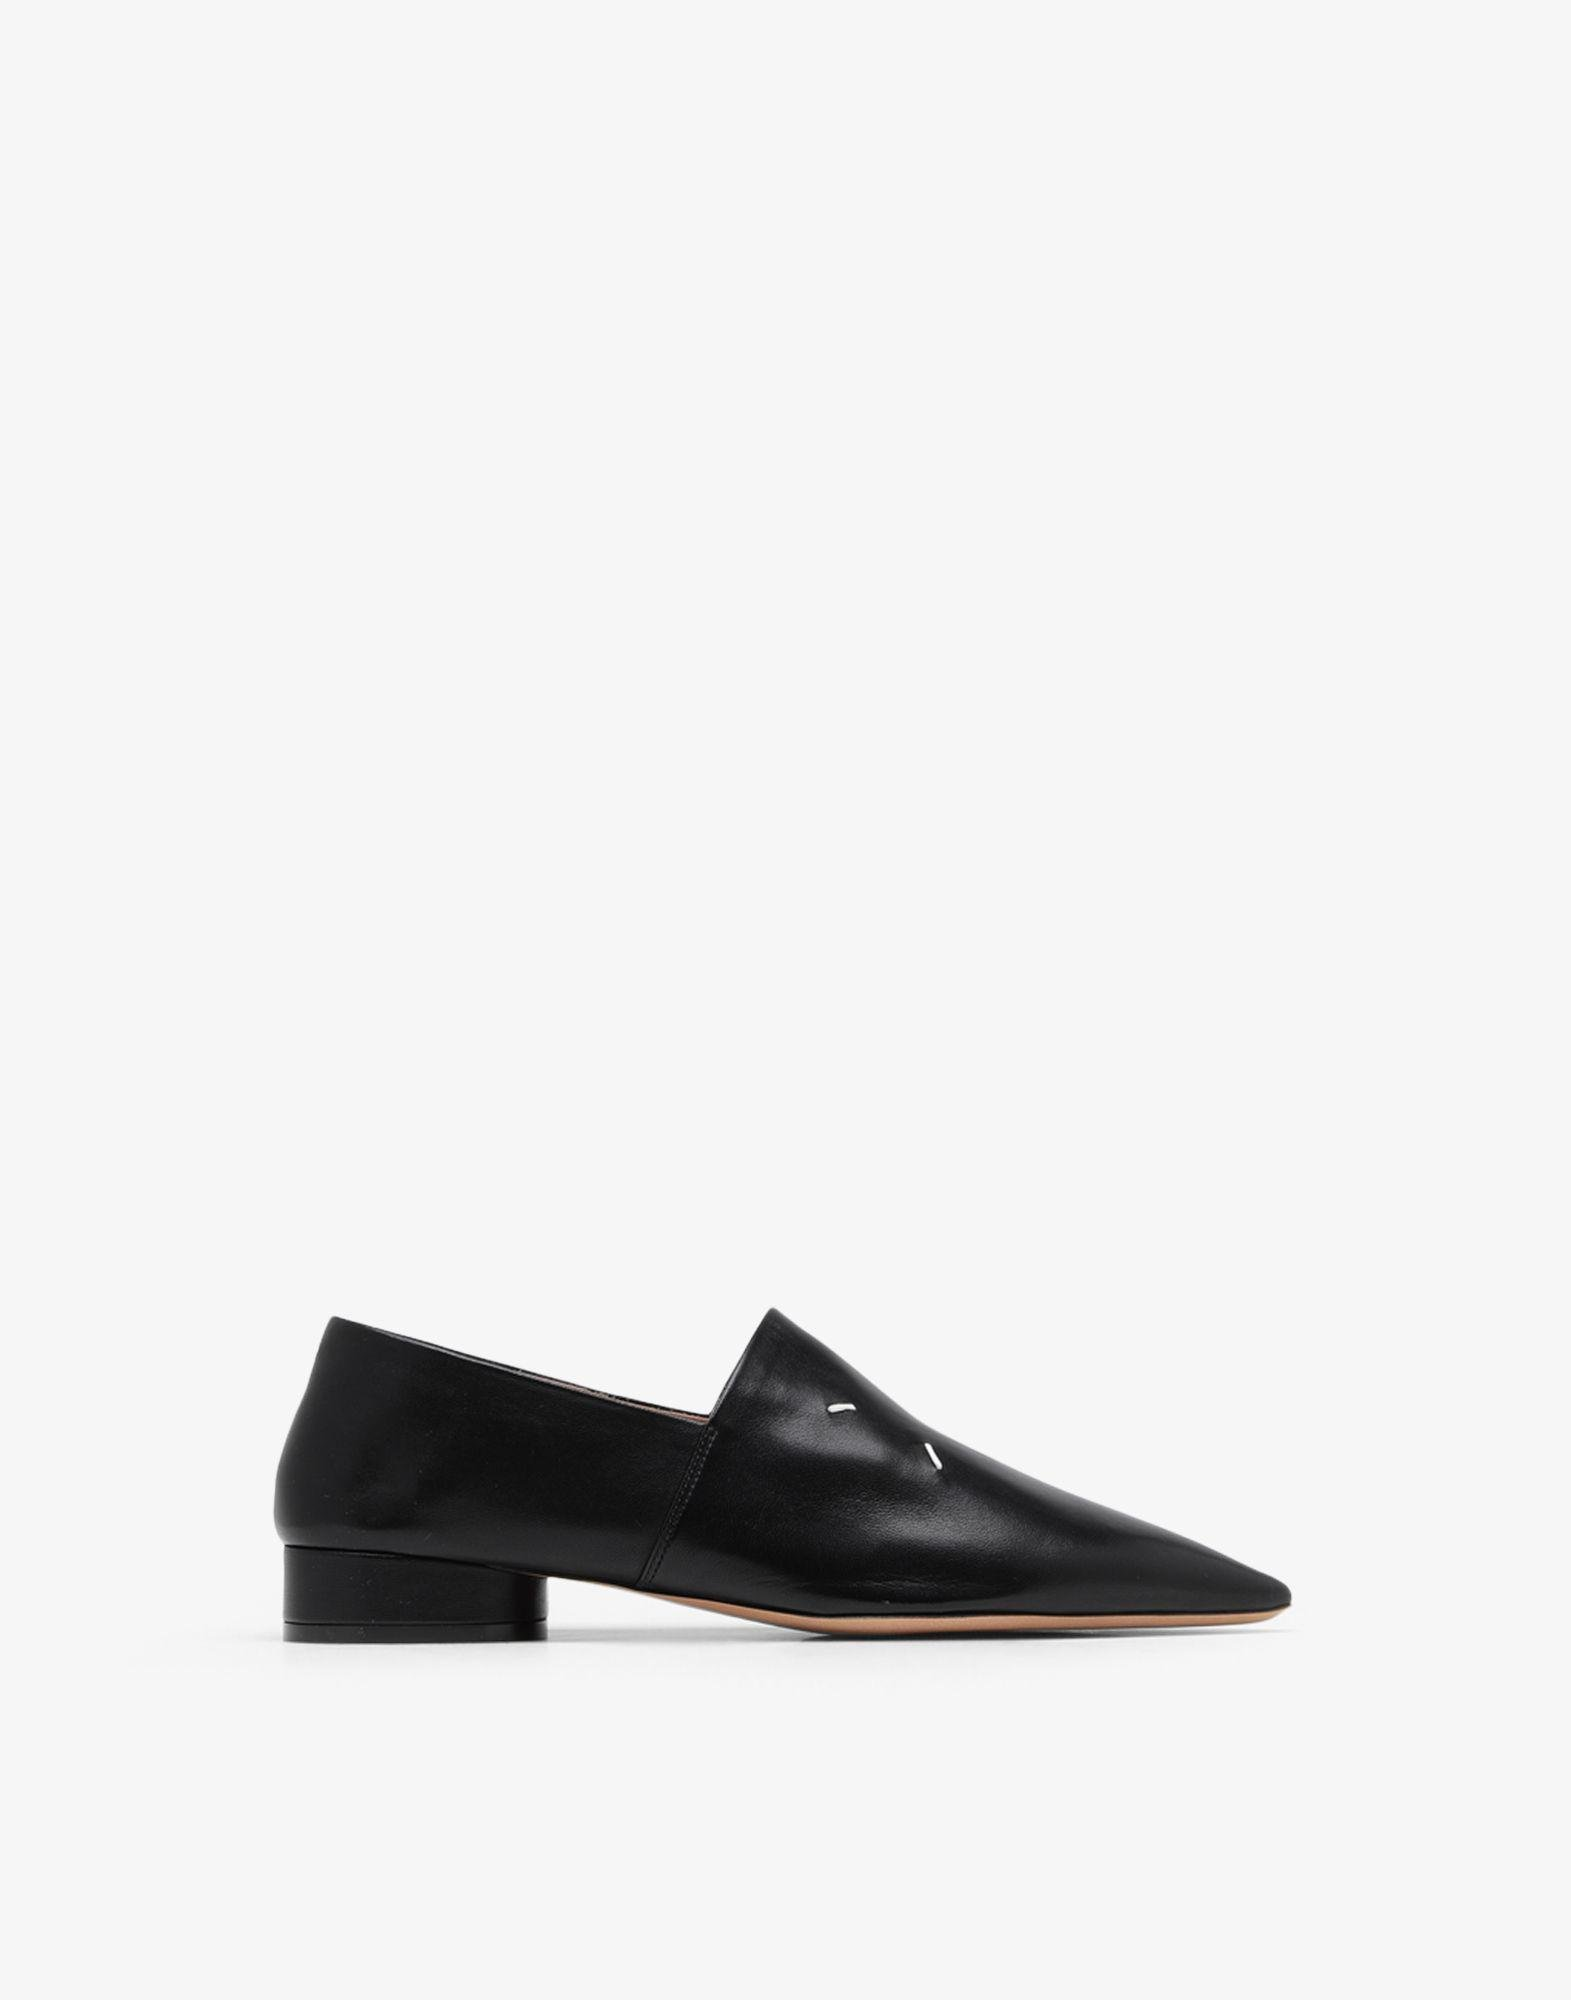 4-stitches leather loafers